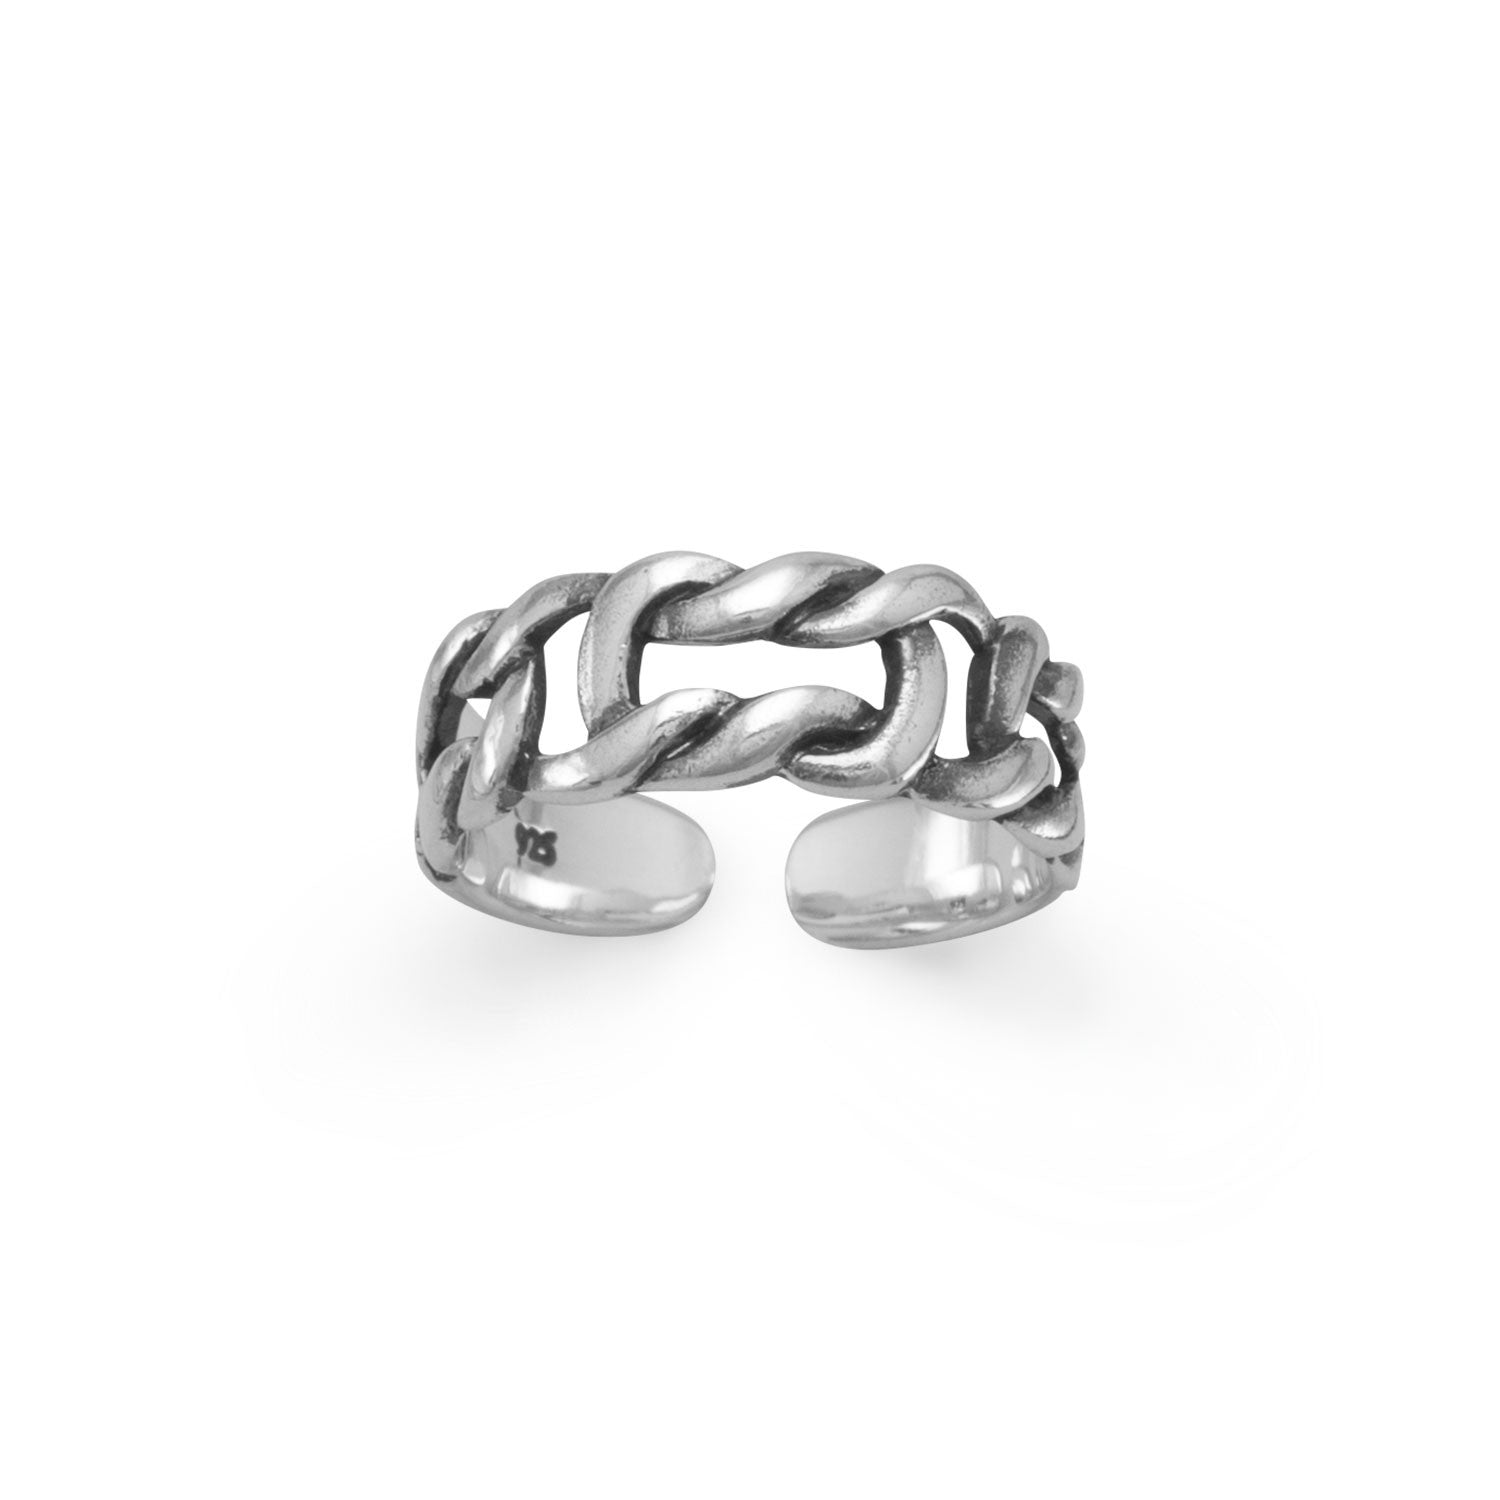 Oxidized Knot Design TOE RING